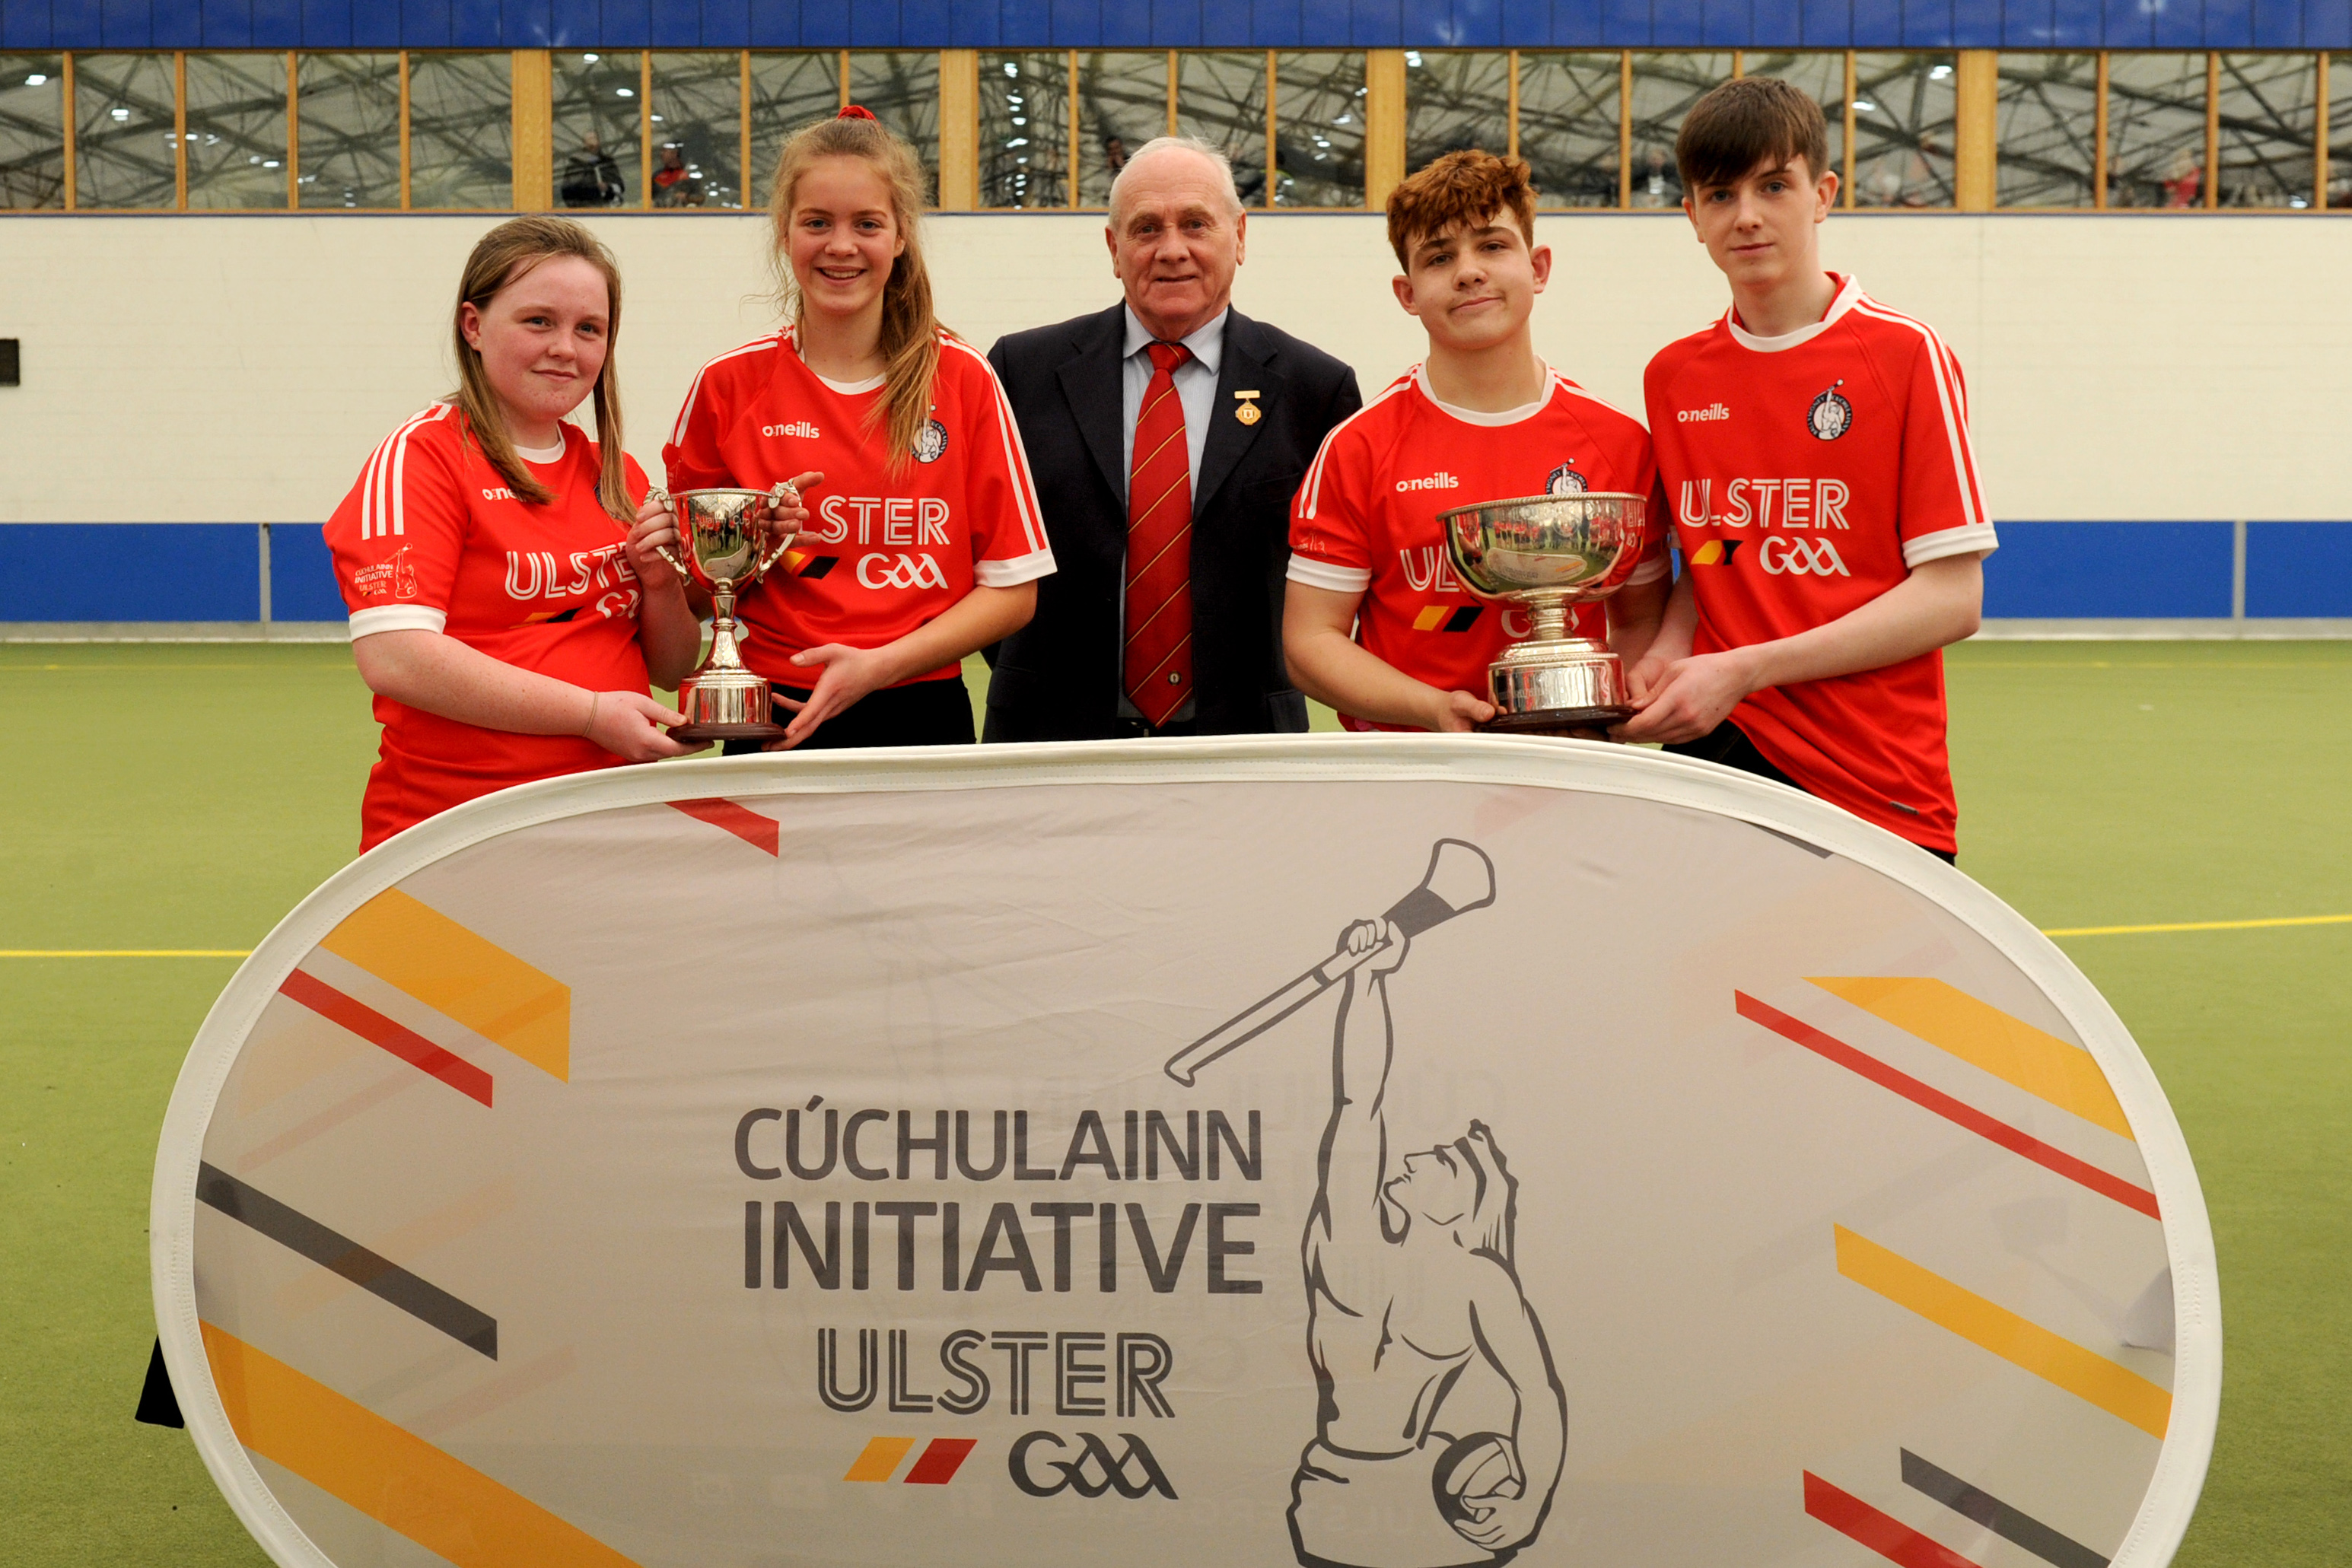 Double Cúchulainn success for Ballymoney Boys and Girls